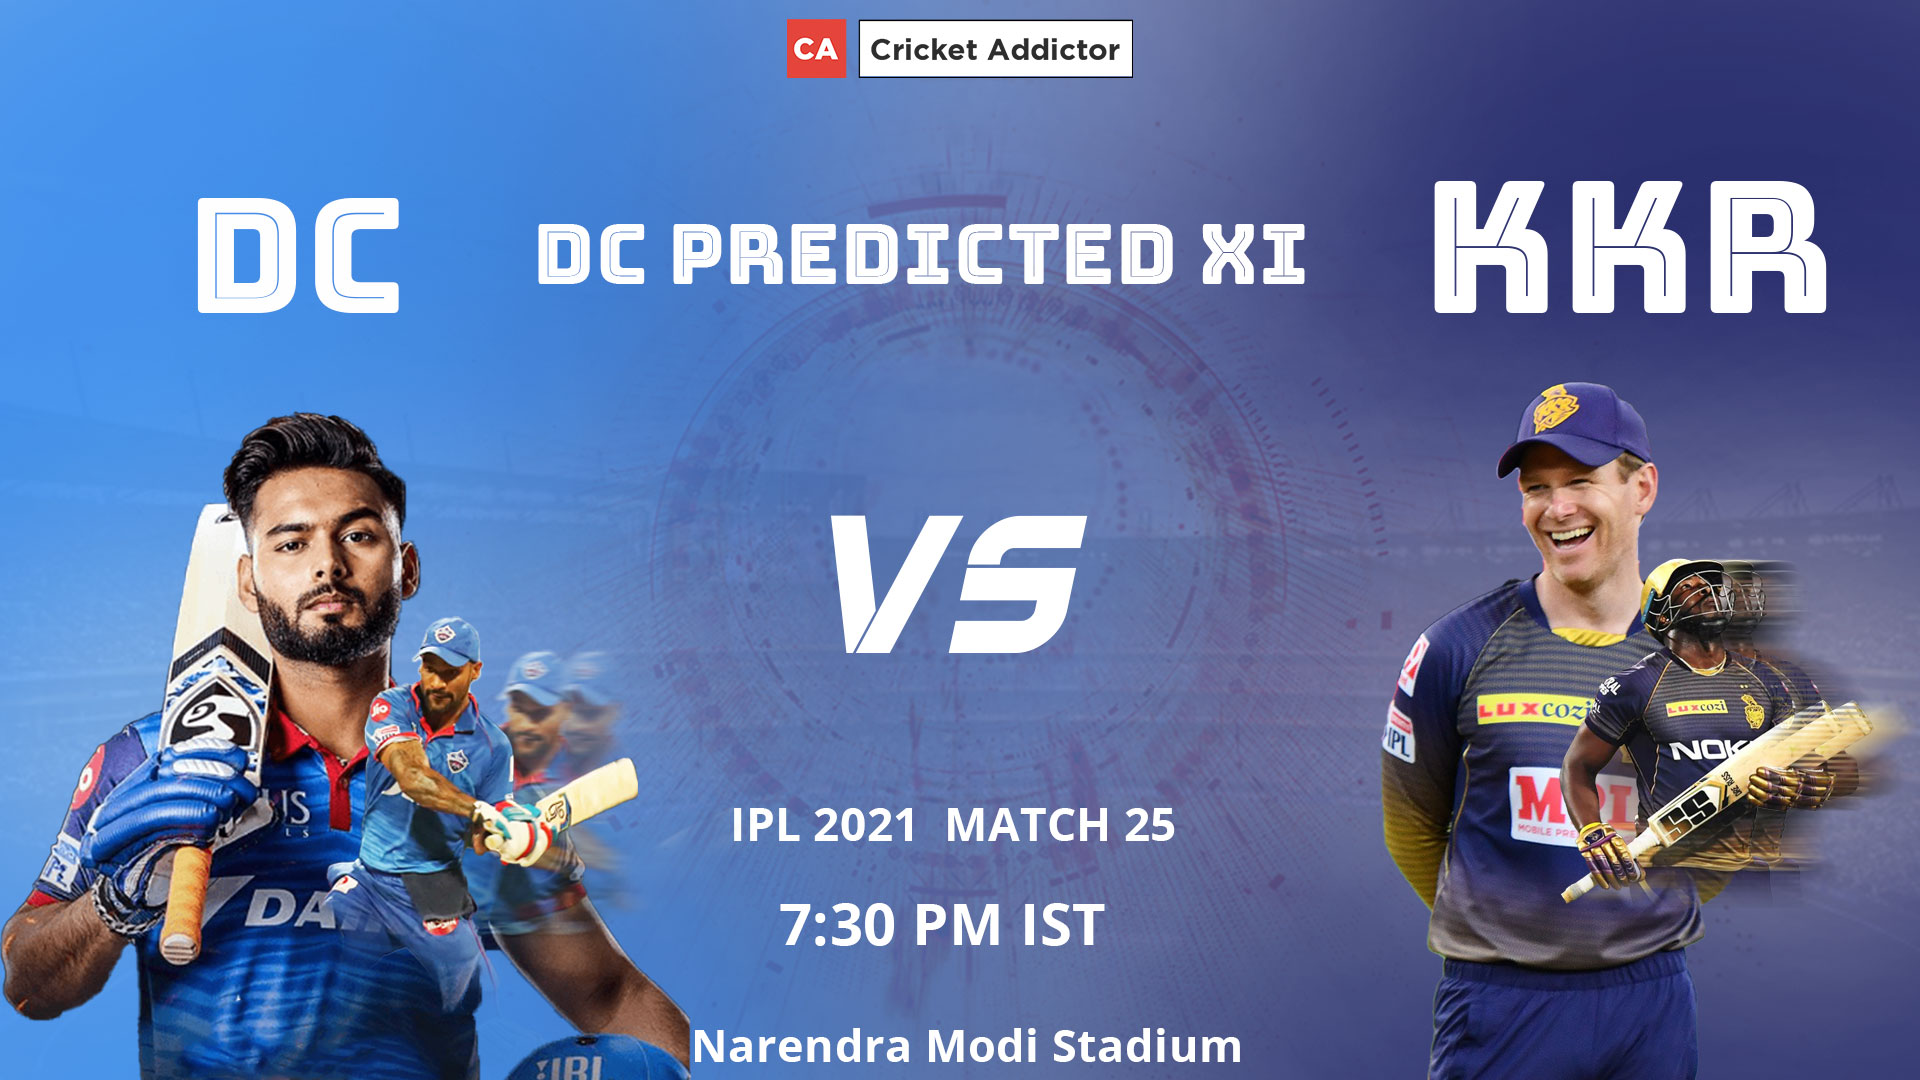 IPL 2021, Delhi Capitals, DC, predicted playing XI, playing XI, DC vs KKR